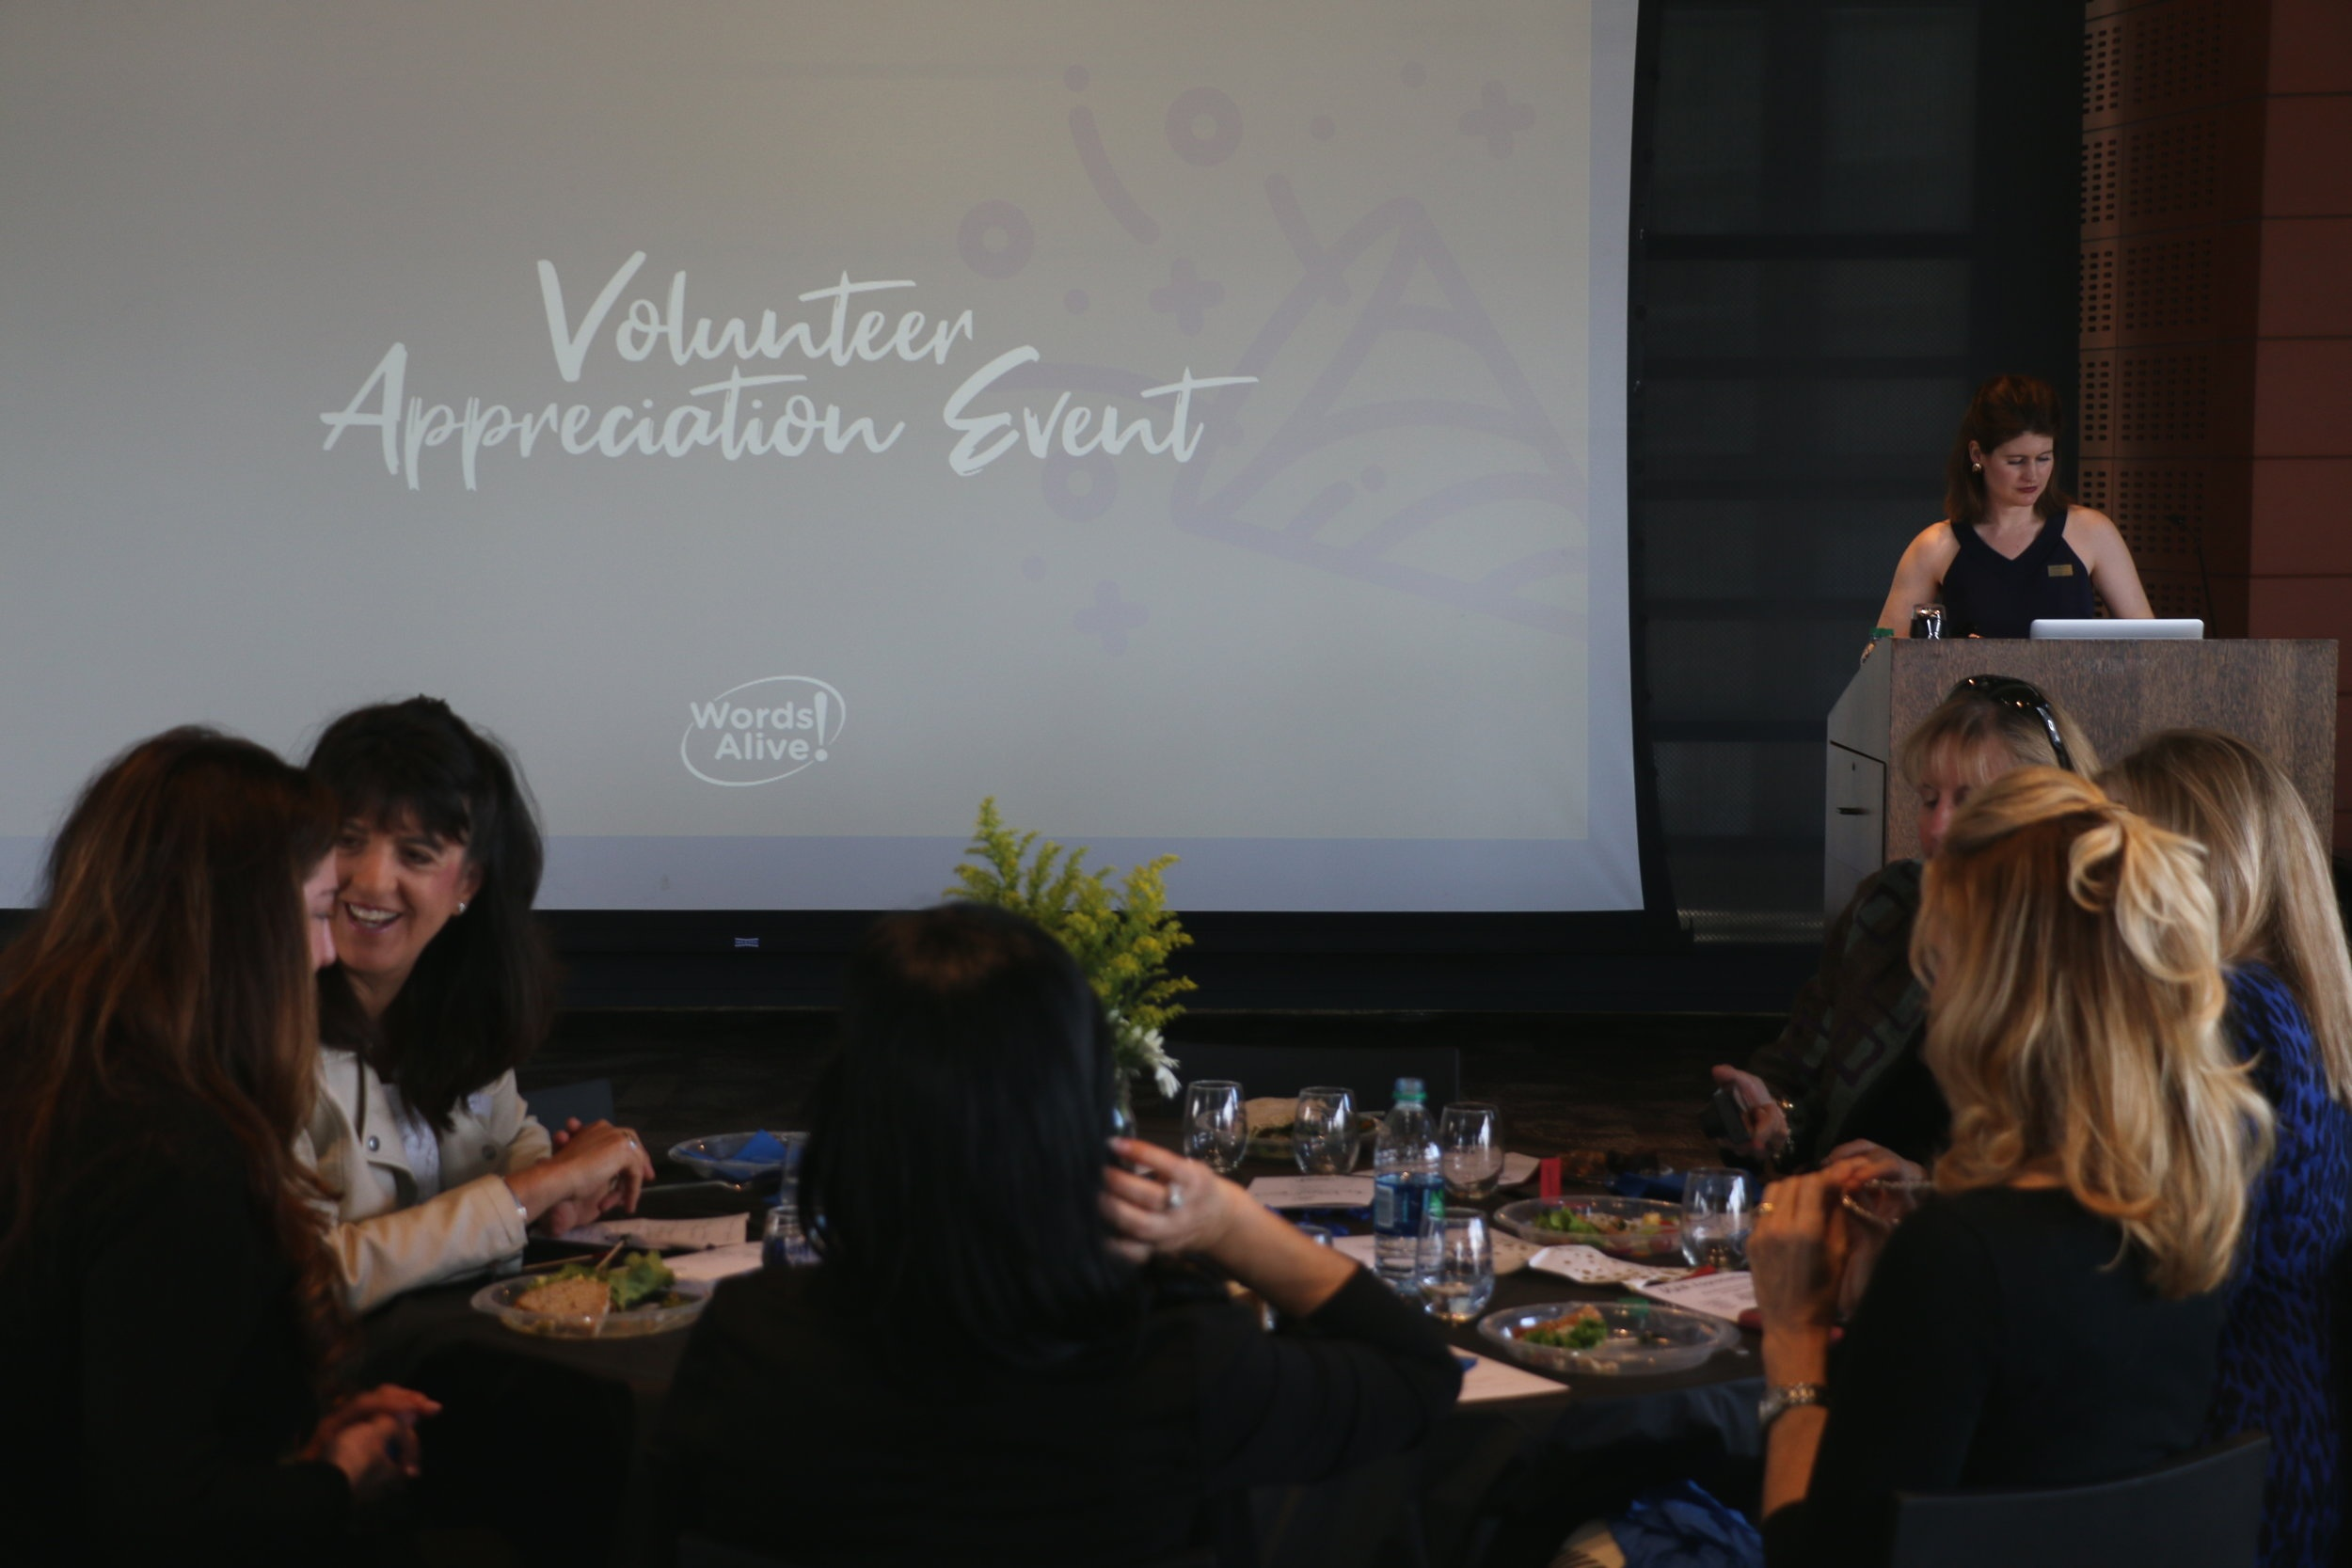 "An image of our Volunteer Appreciation Event. Volunteer Program Manager, Christina Meeker, stands at the podium in front of a screen that says ""Volunteer Appreciation Event."" Volunteers mingling over lunch also appear in the image."